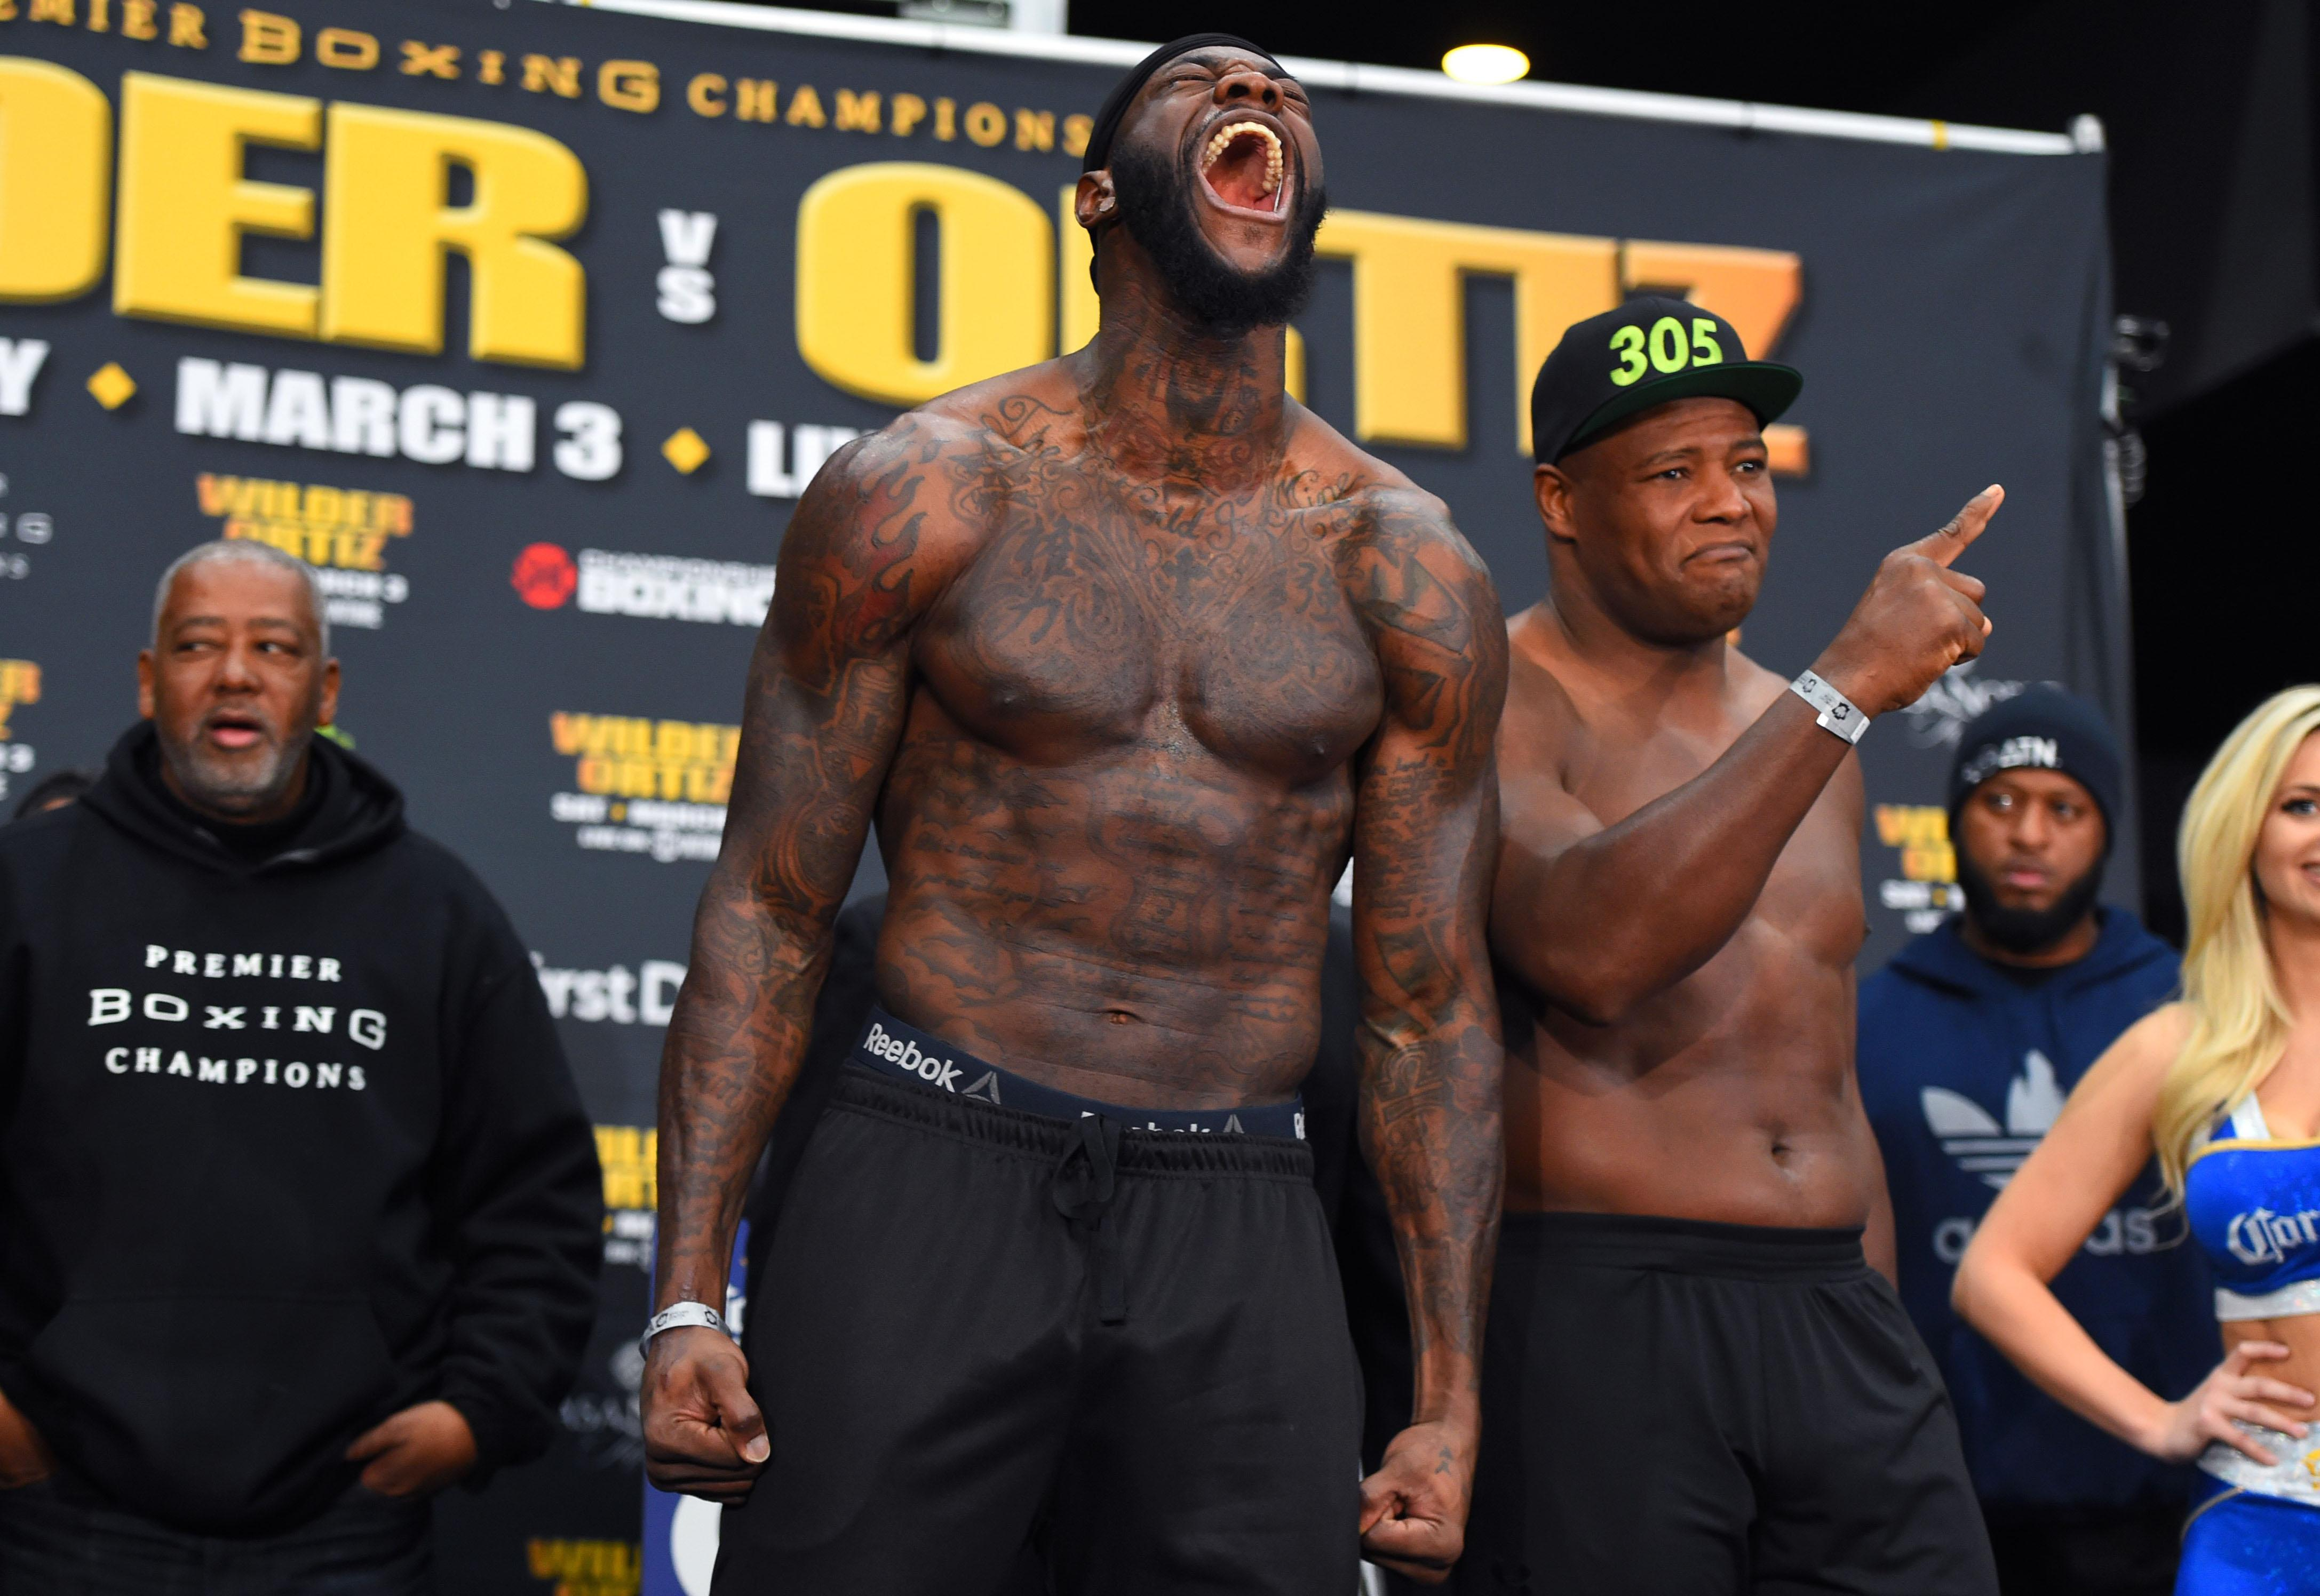 He also stated he had to fight AJ and American heavyweight king Deontay Wilder